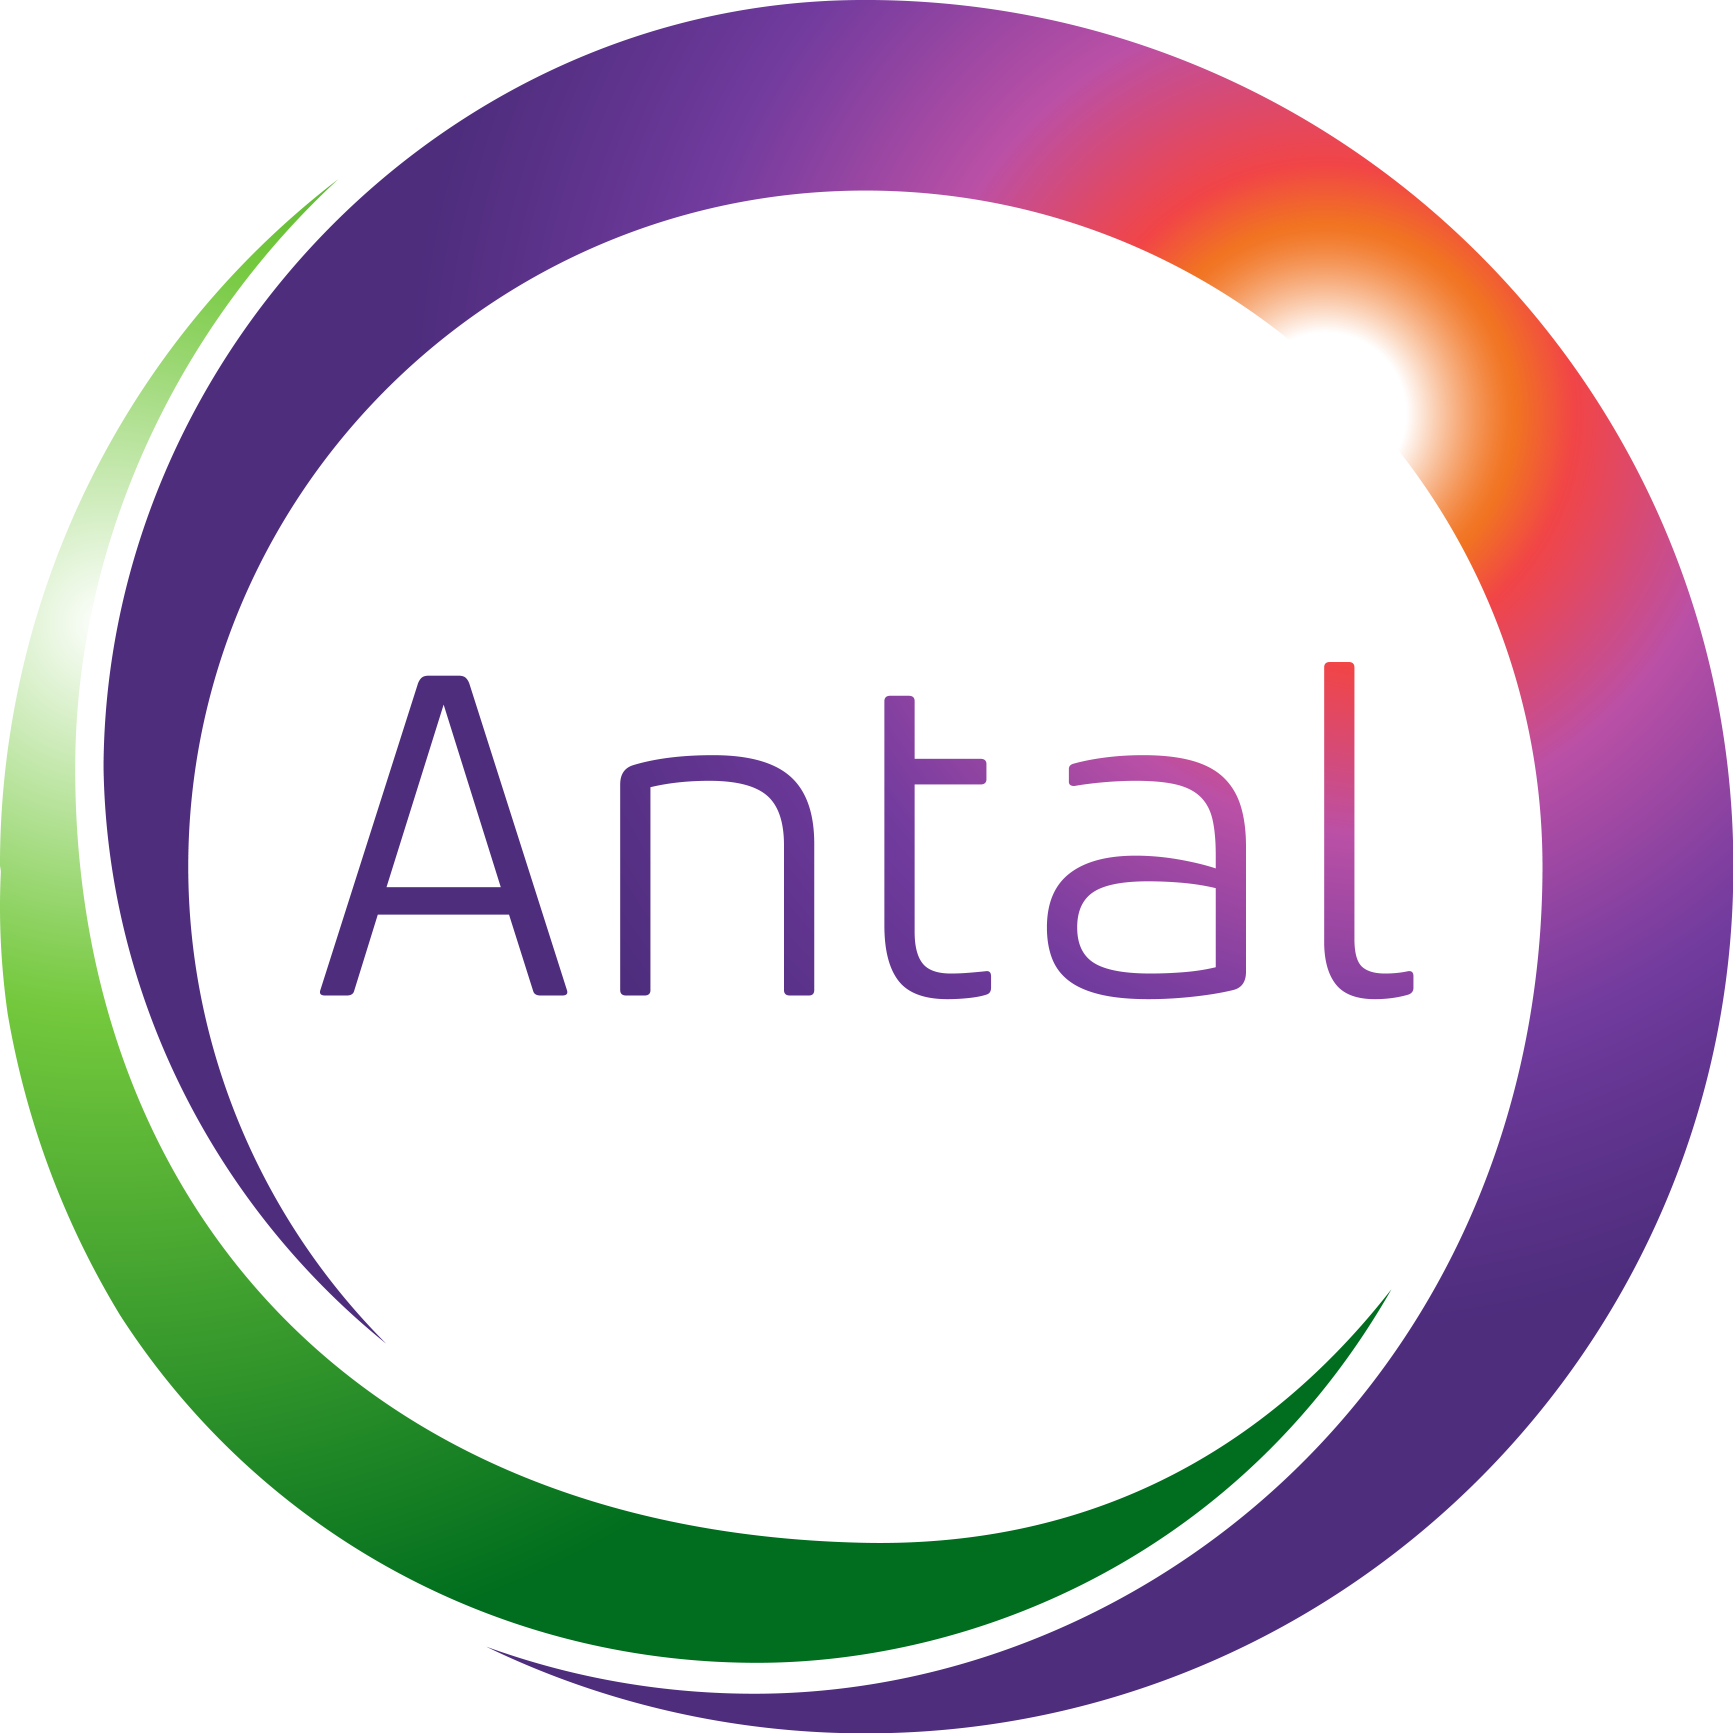 http://www.pakpositions.com/company/antal-pakistan